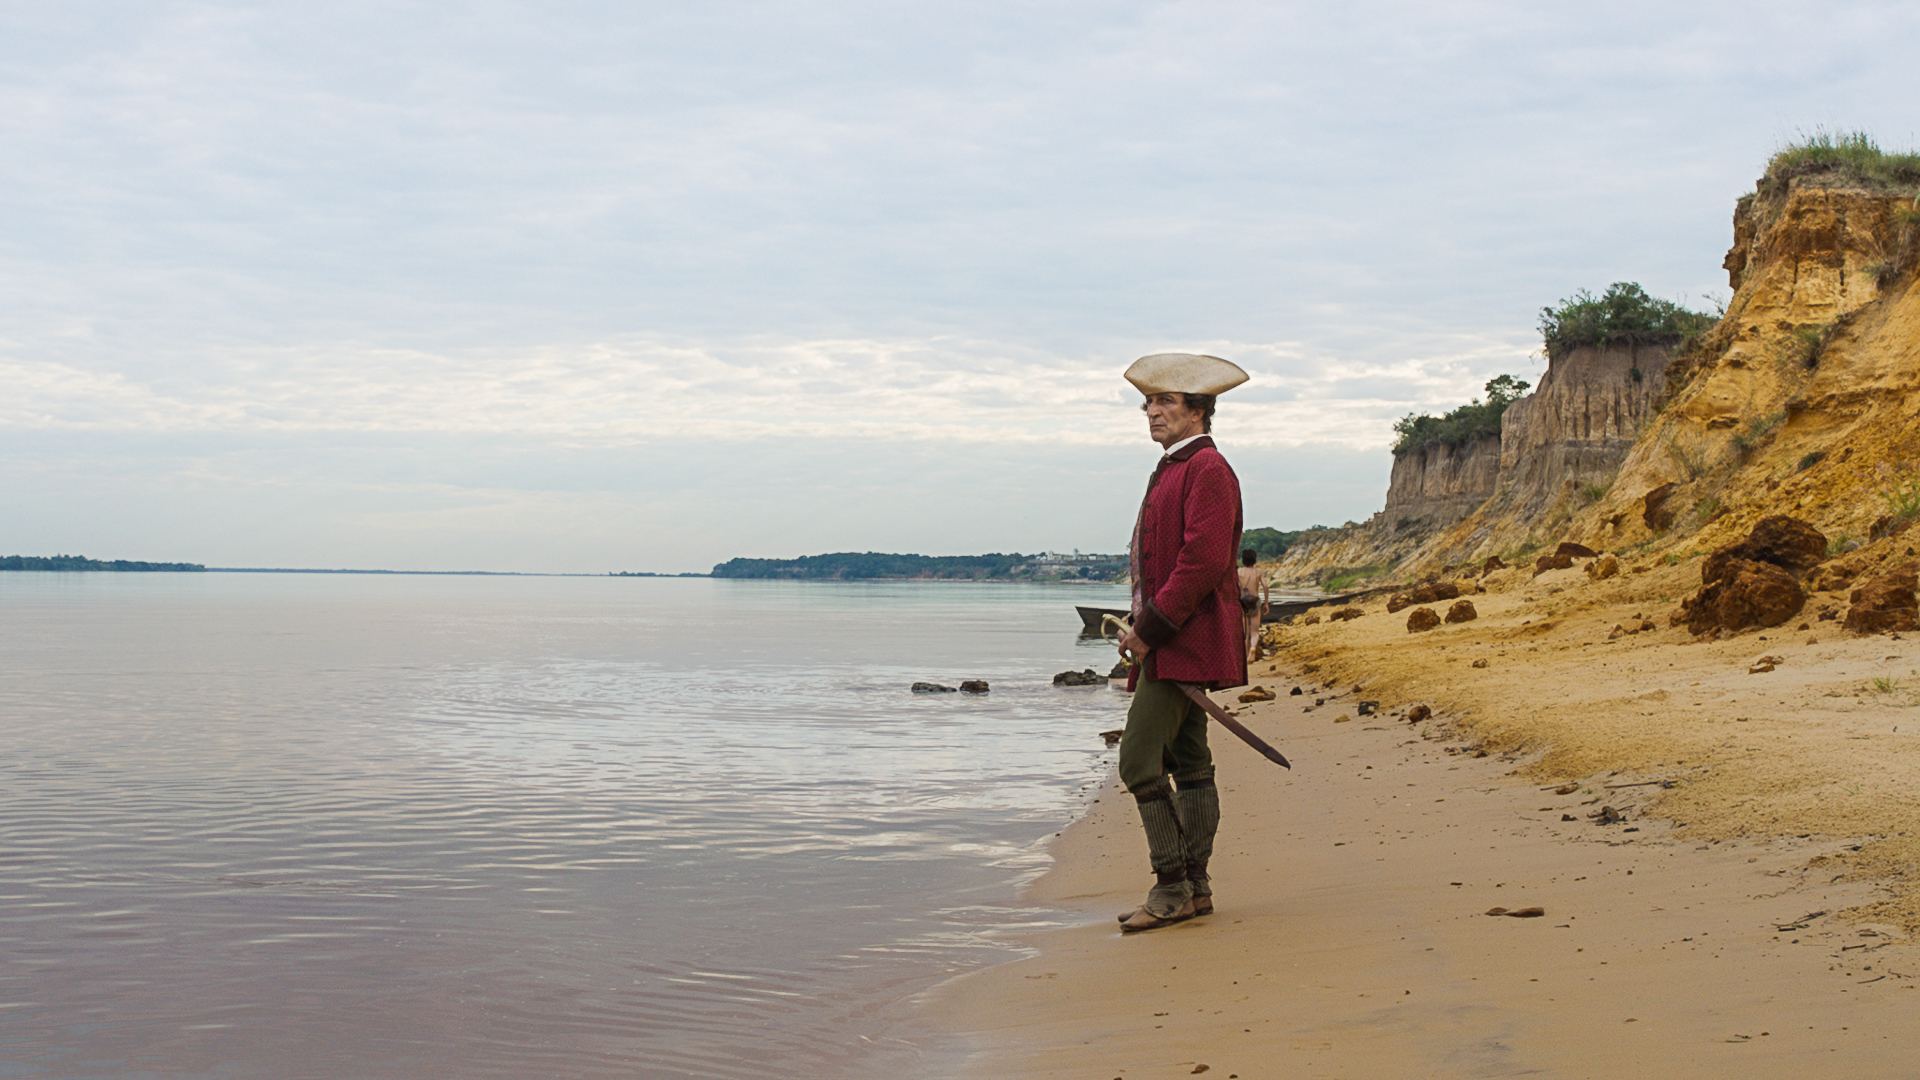 zama-lucrecia-martel-movie